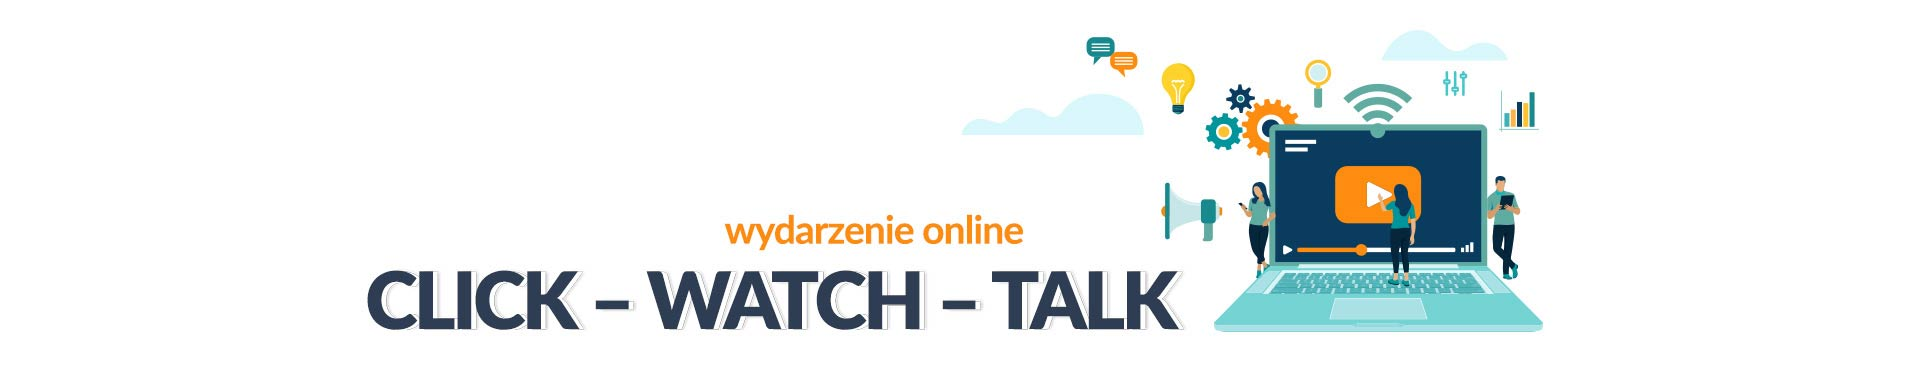 CLICK-WATCH-TALK KOMPOZYT-EXPO 2020